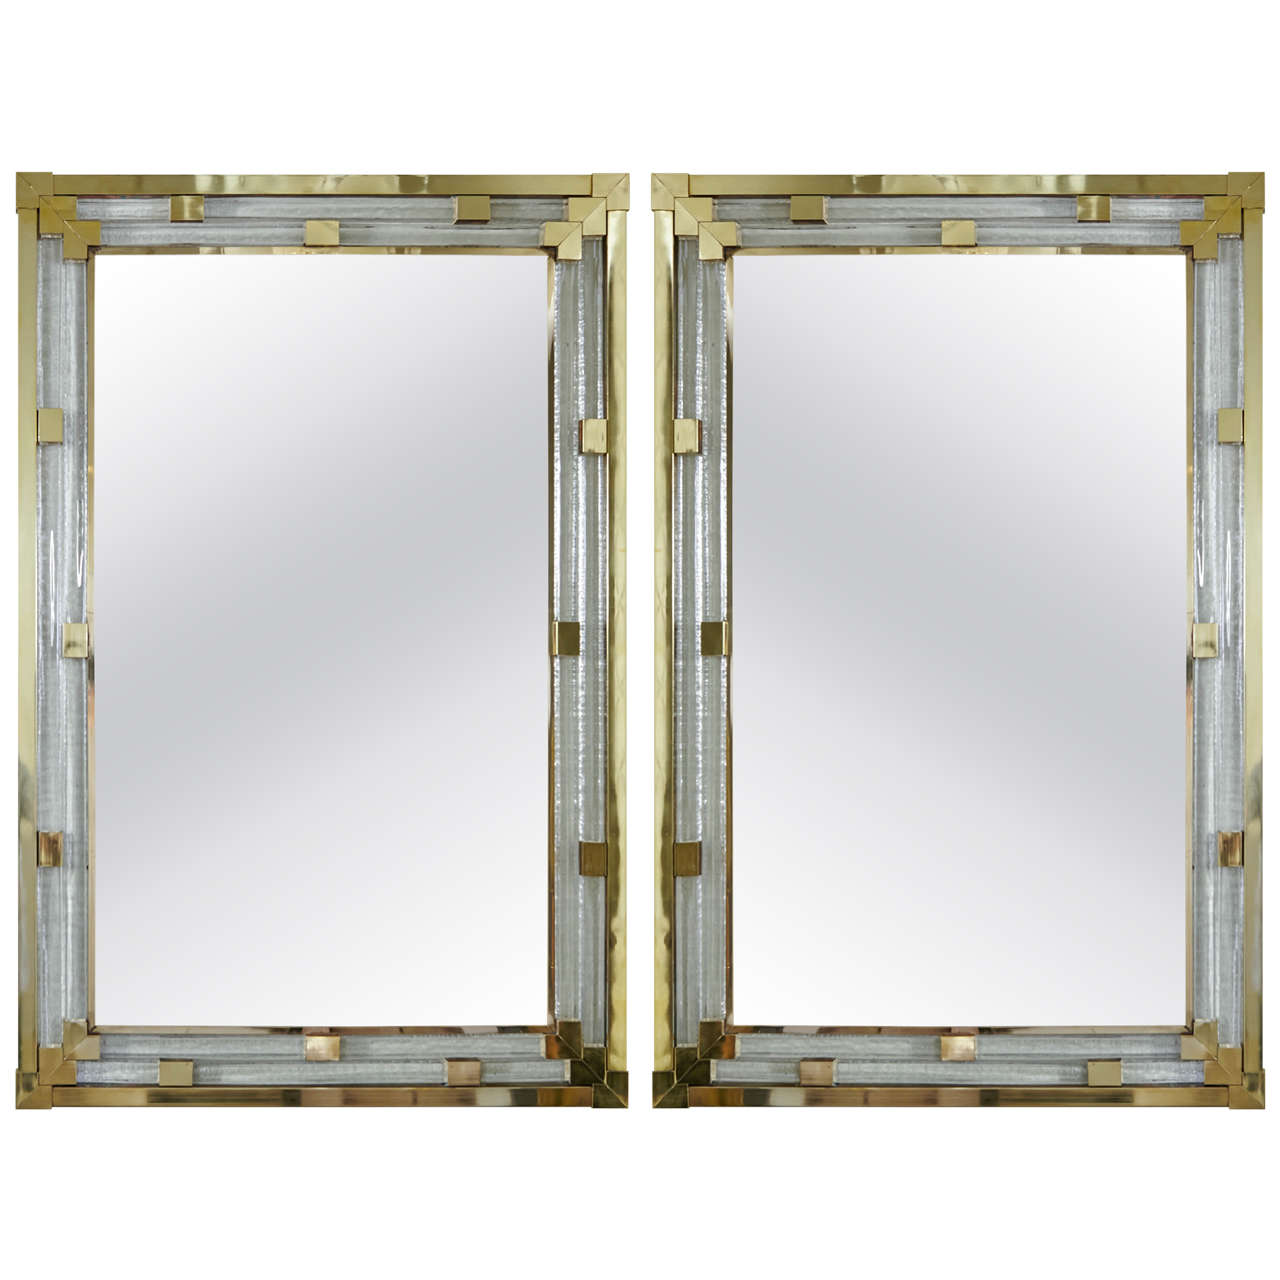 Pair Of Italian Art Deco Style Mirrors In Molded Glass And